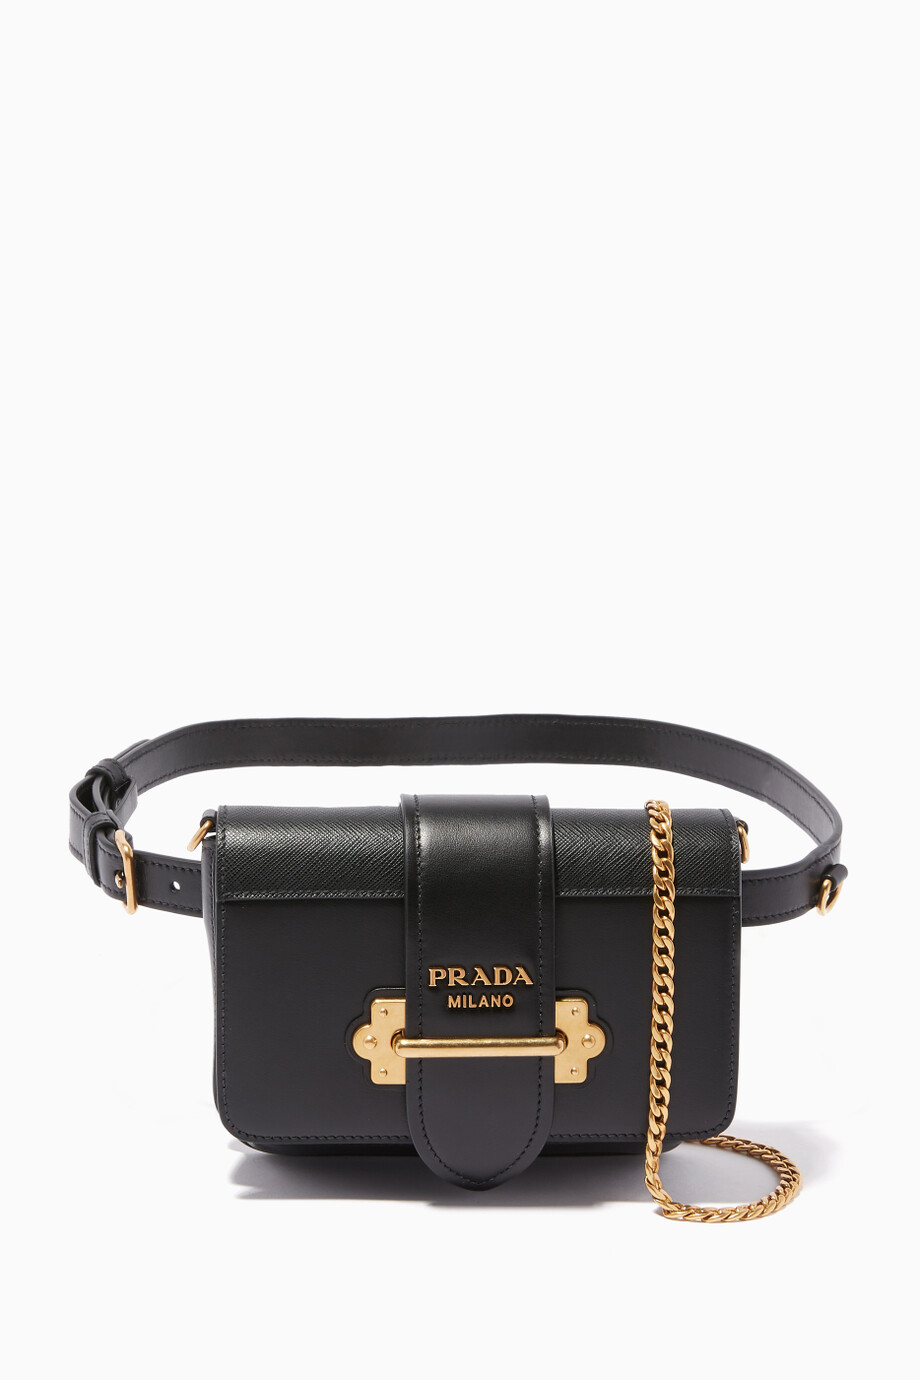 1f9ab0599aa3 Shop Prada Black Black Cahier Belt Bag for Women | Ounass